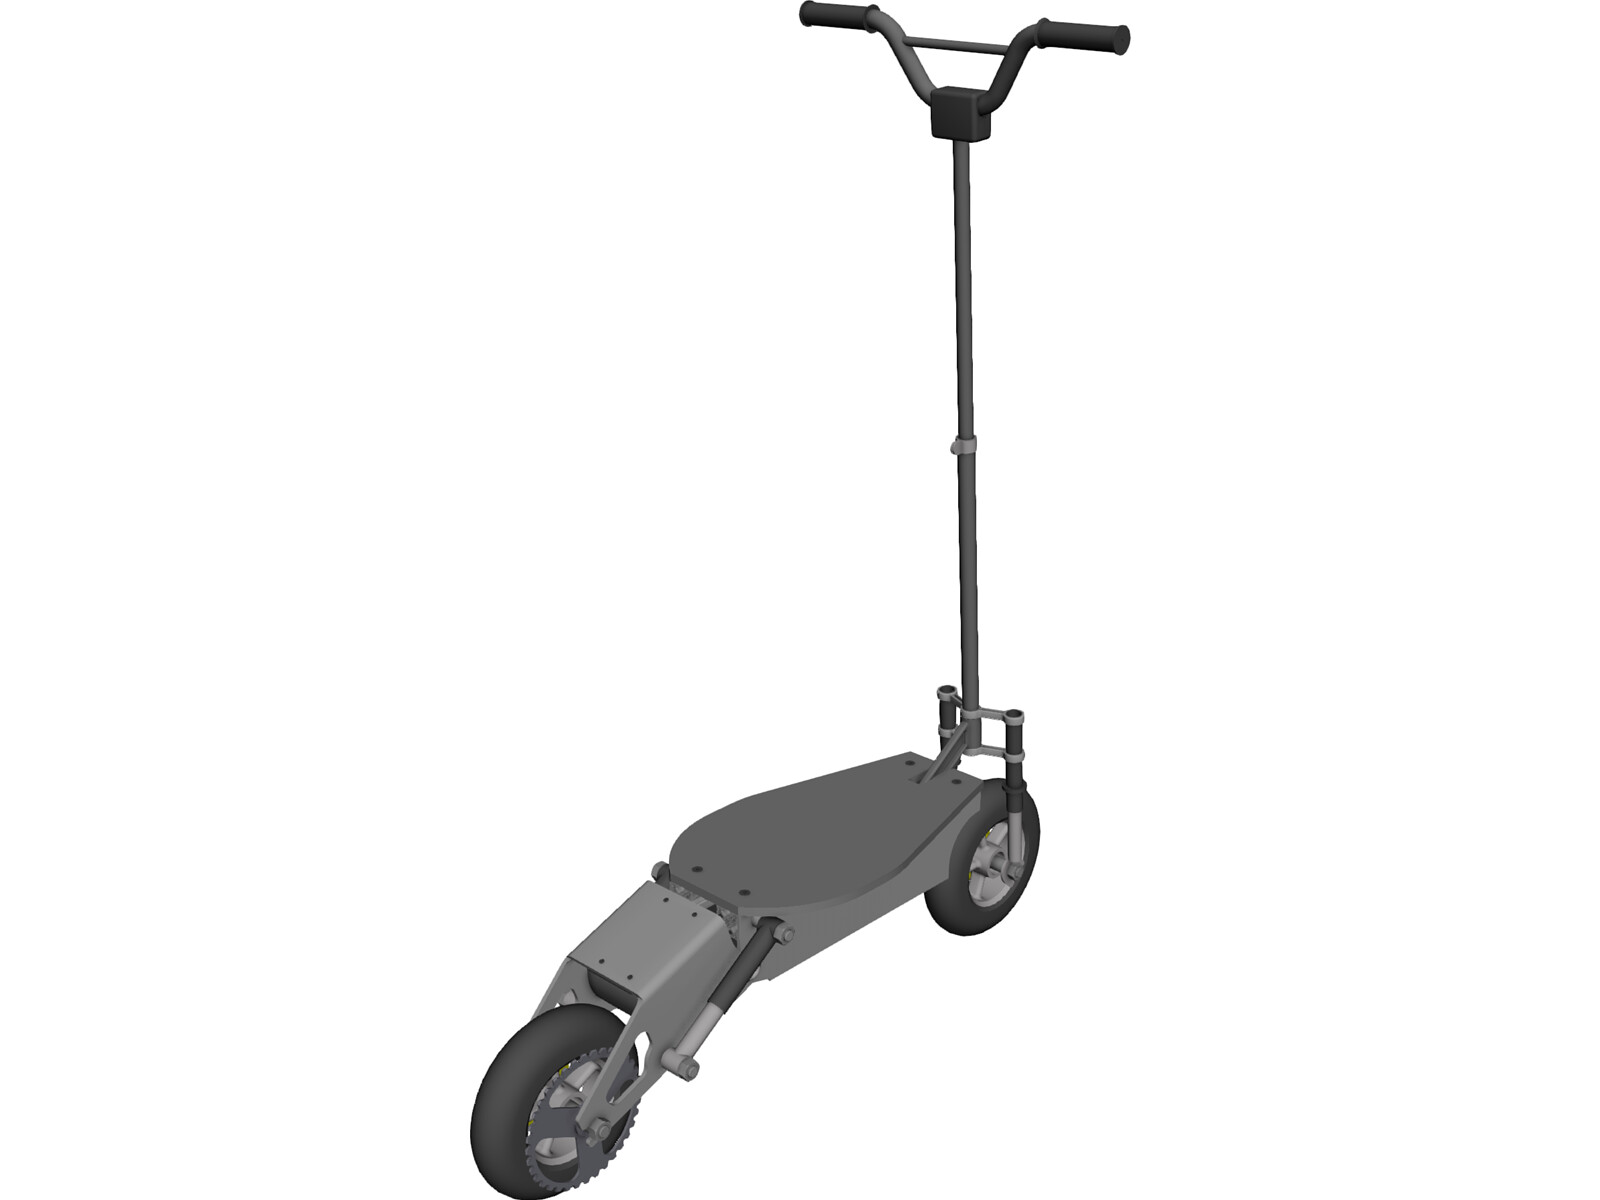 Scooter Electric 3D CAD Model